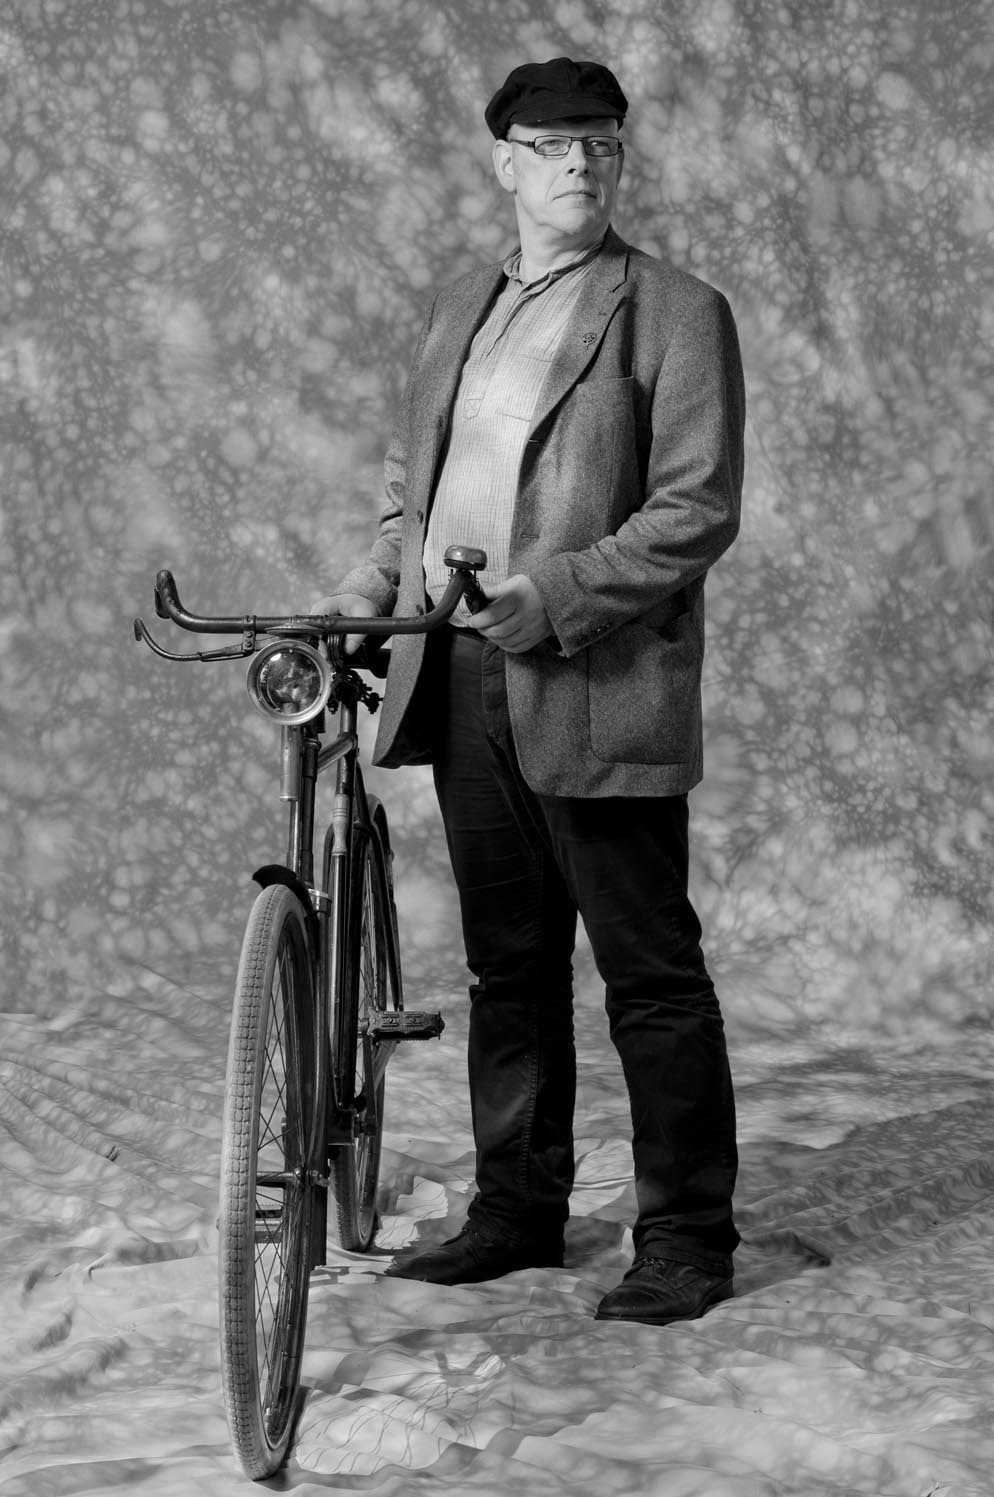 "PORTRAIT: R.KERKHOF - BIKE: GENTELMAN""S BIKE WITH CANDLE"